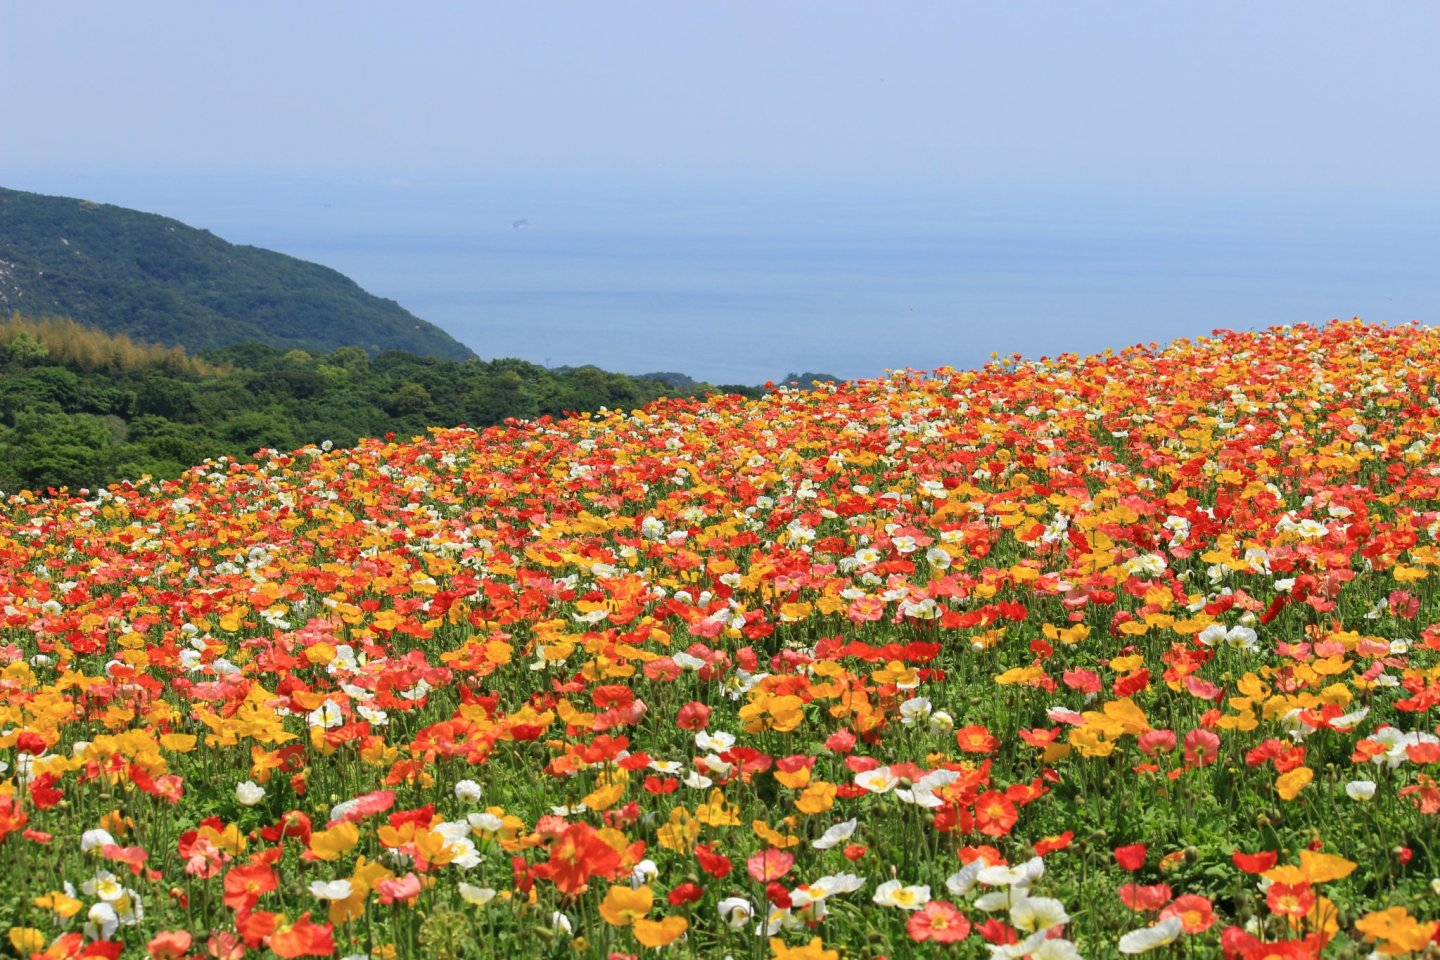 Poppies as far as the eye can see